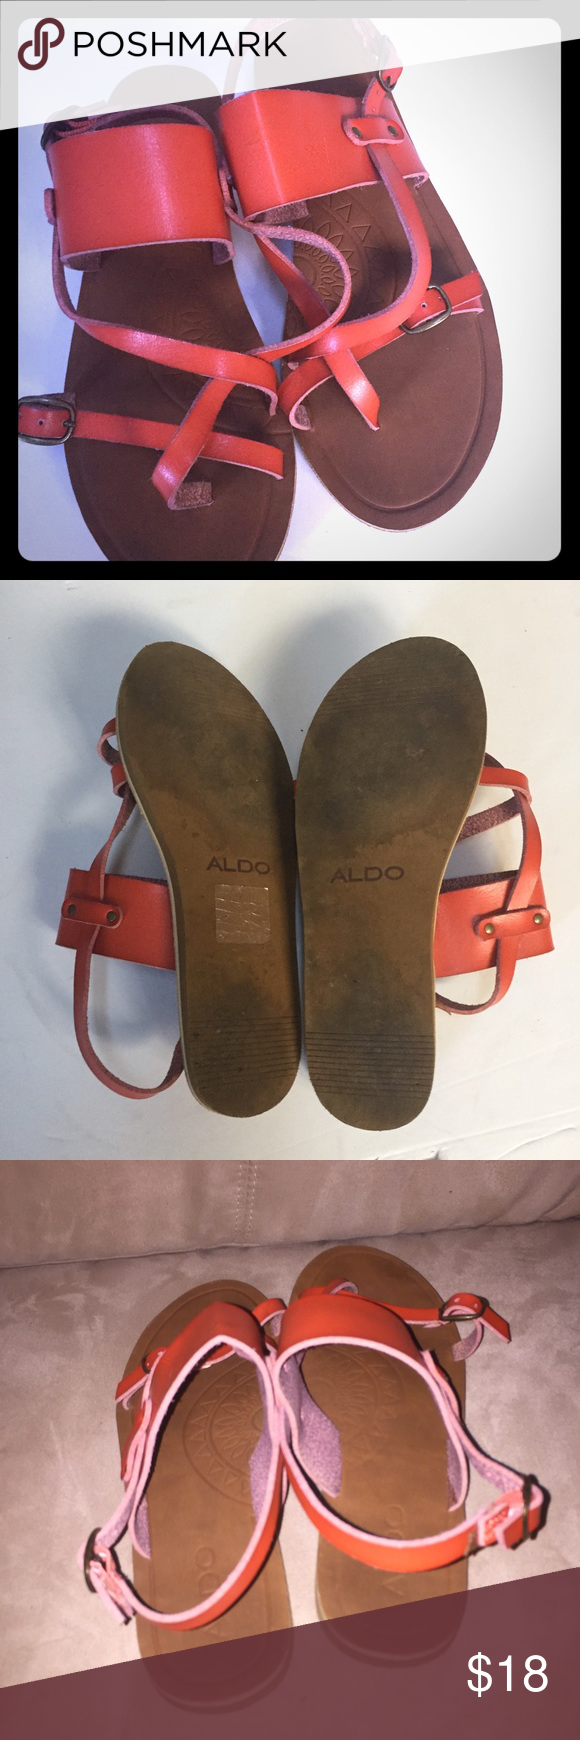 Aldo cute leather orange sandals Aldo Burnt Orange Leather  Sandals Size 7  good condition !!   All items are from smoke free environment Aldo Shoes Sandals